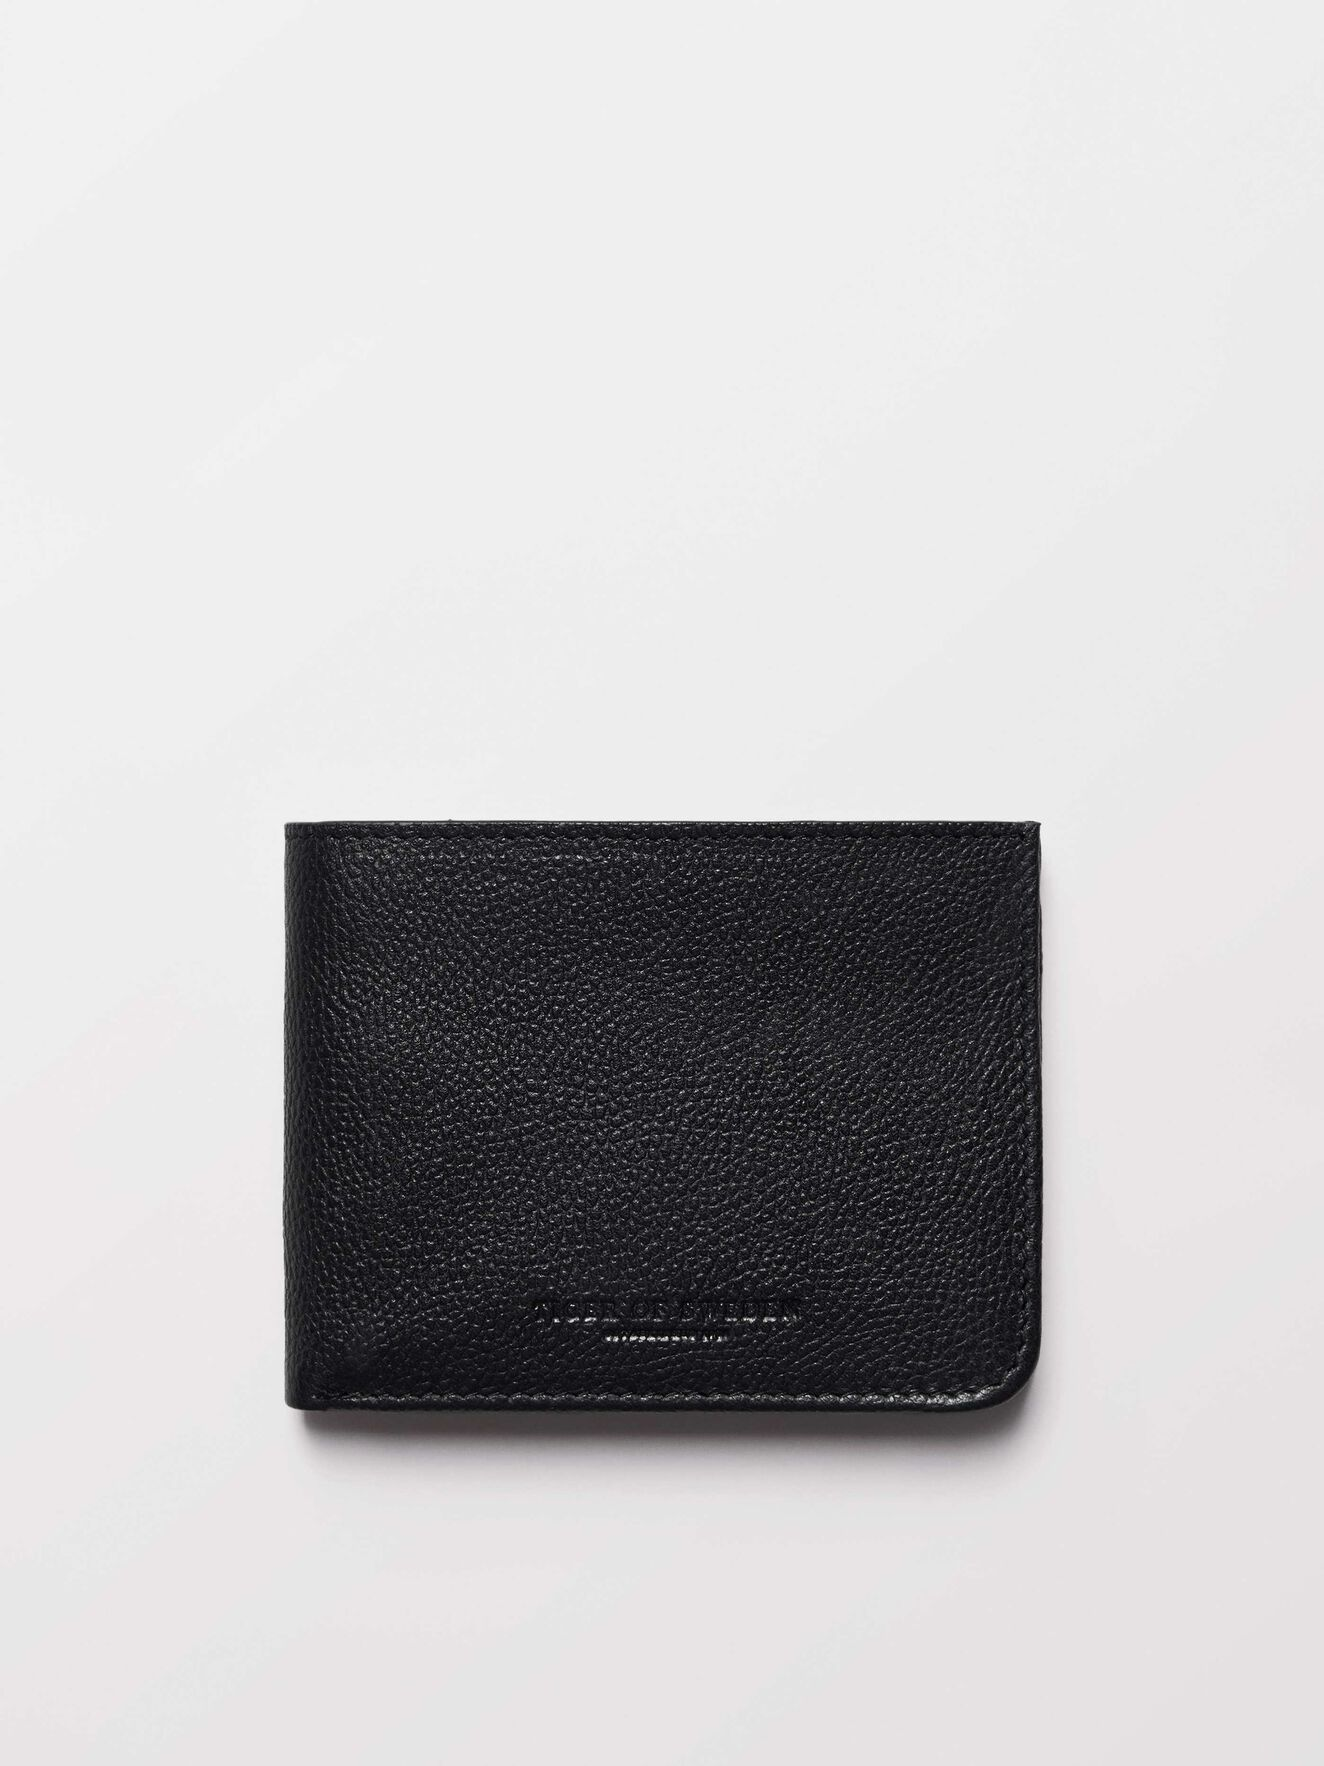 Zadkine Wallet in Black from Tiger of Sweden